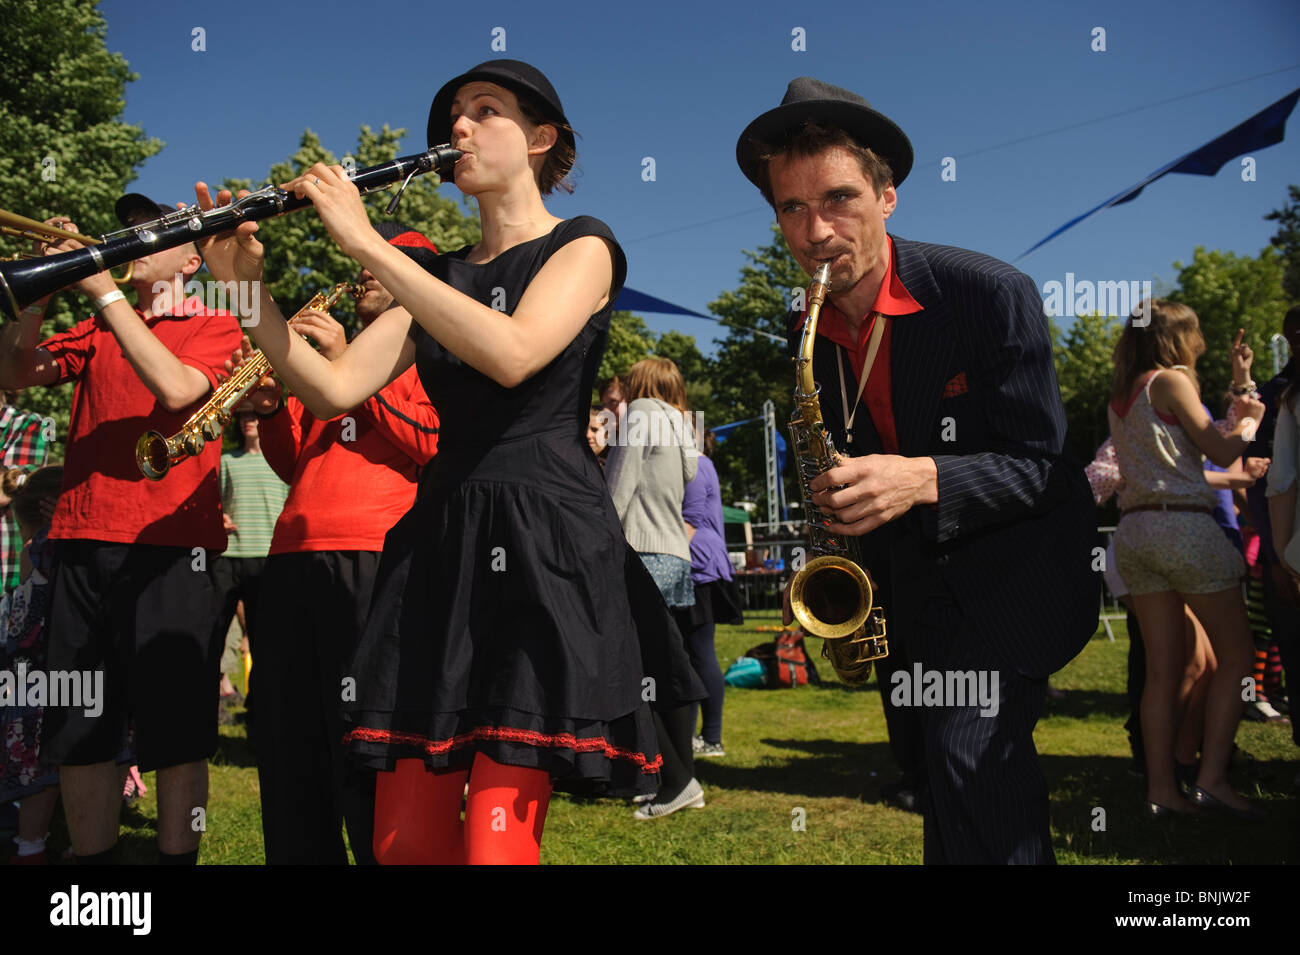 Orkestra Del Sol performing at Aberystwyth Arts Centre 'Mid Mad - Midsummer Madness' open air free music - Stock Image